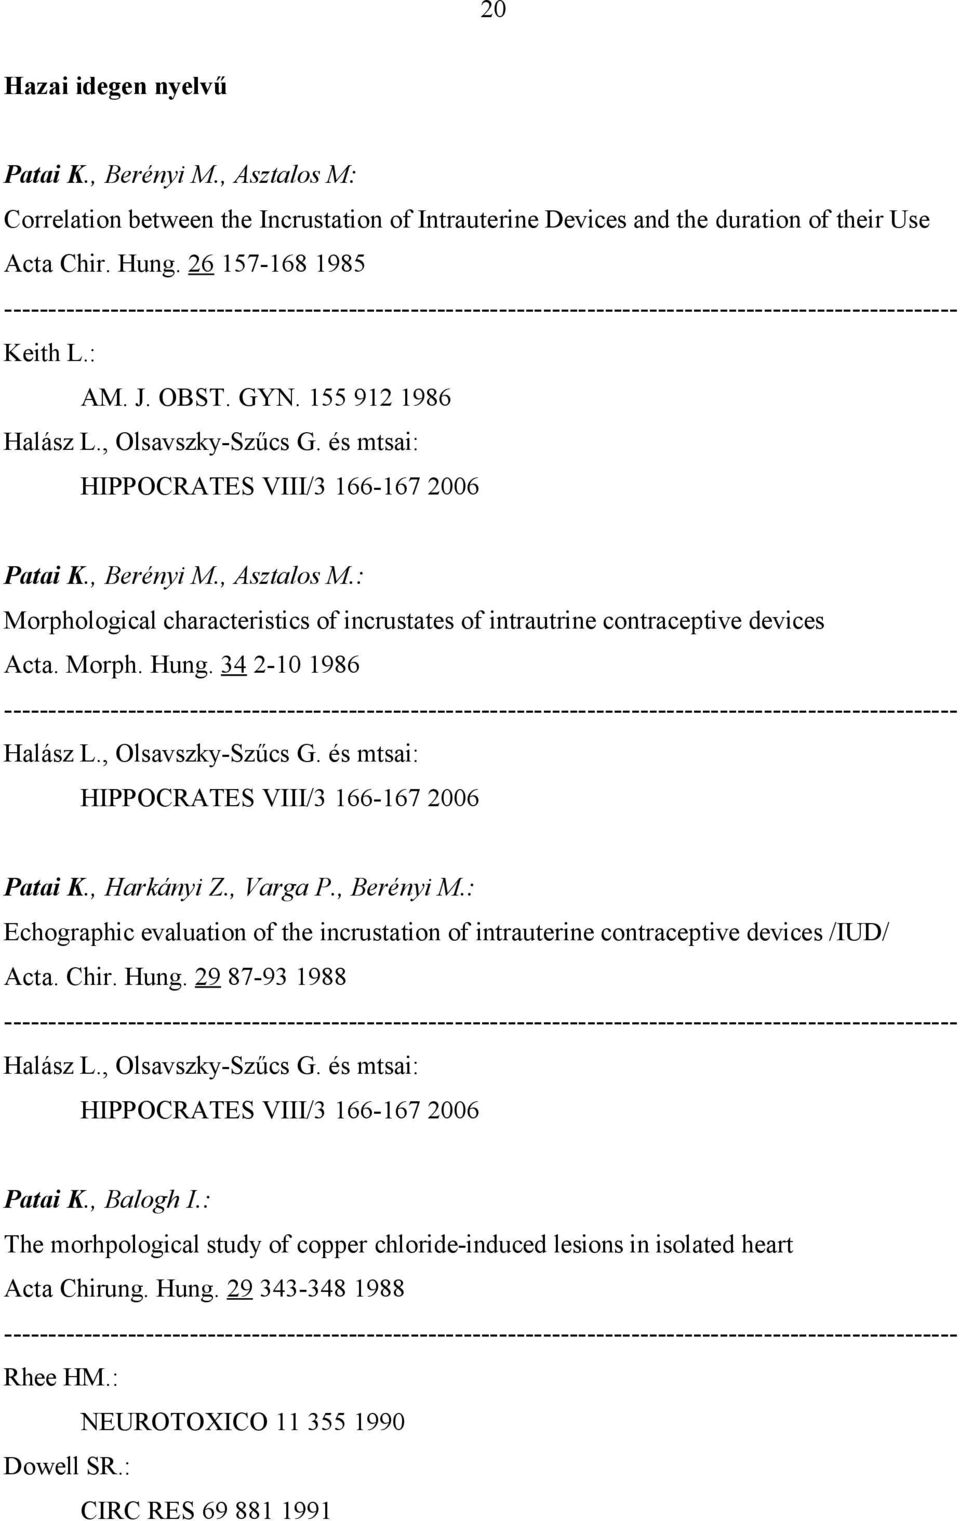 Morph. Hung. 34 2-10 1986 Patai K., Harkányi Z., Varga P., Berényi M.: Echographic evaluation of the incrustation of intrauterine contraceptive devices /IUD/ Acta. Chir. Hung. 29 87-93 1988 Patai K.